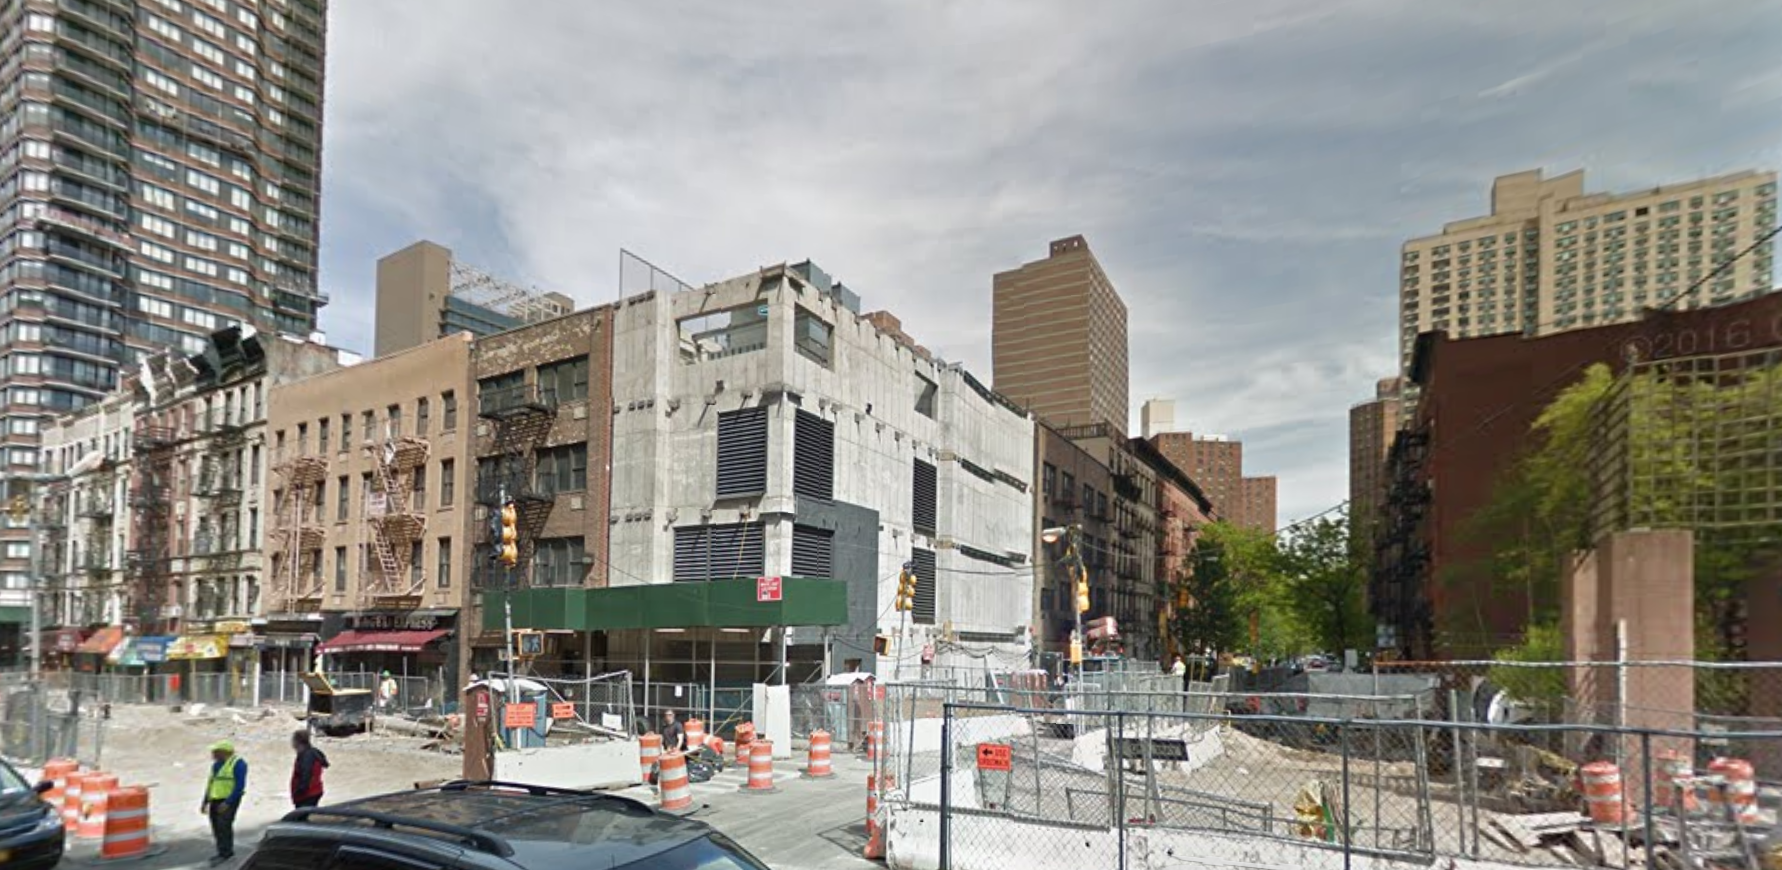 1802 Second Avenue in May 2016. image via Google Maps